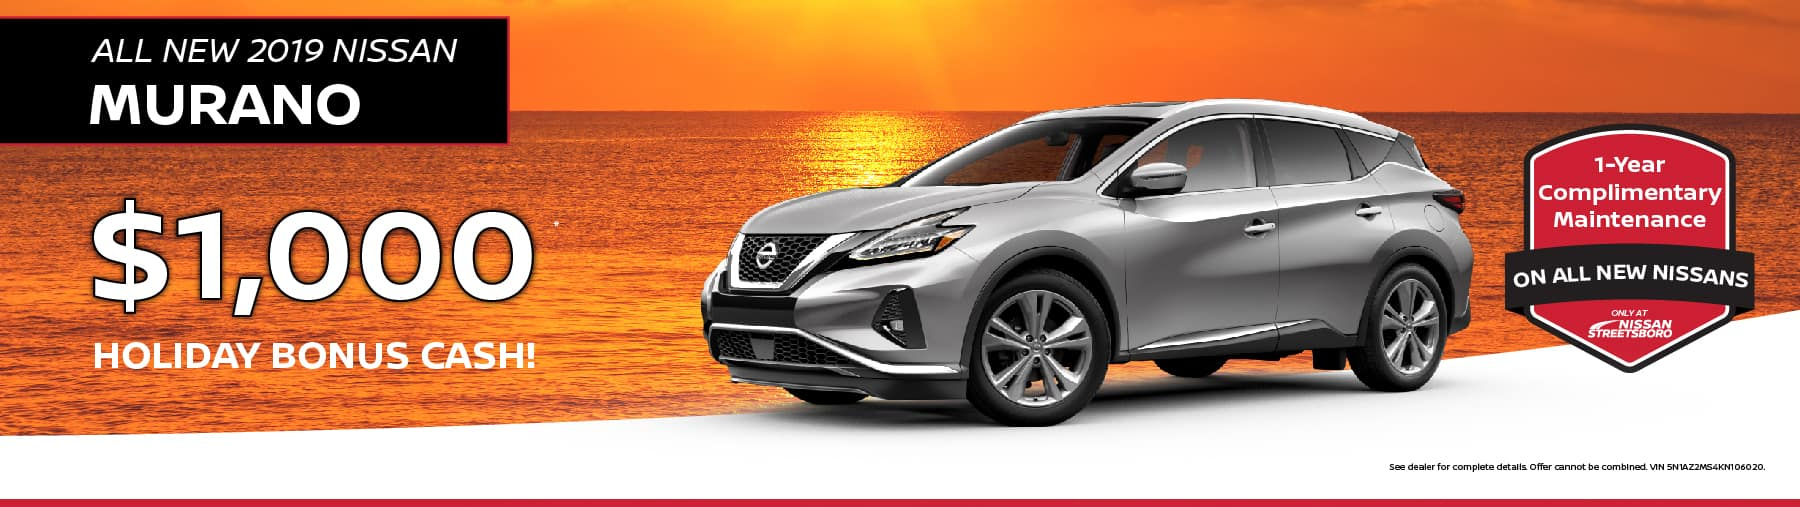 2019 Nissan Murano Holiday Cash